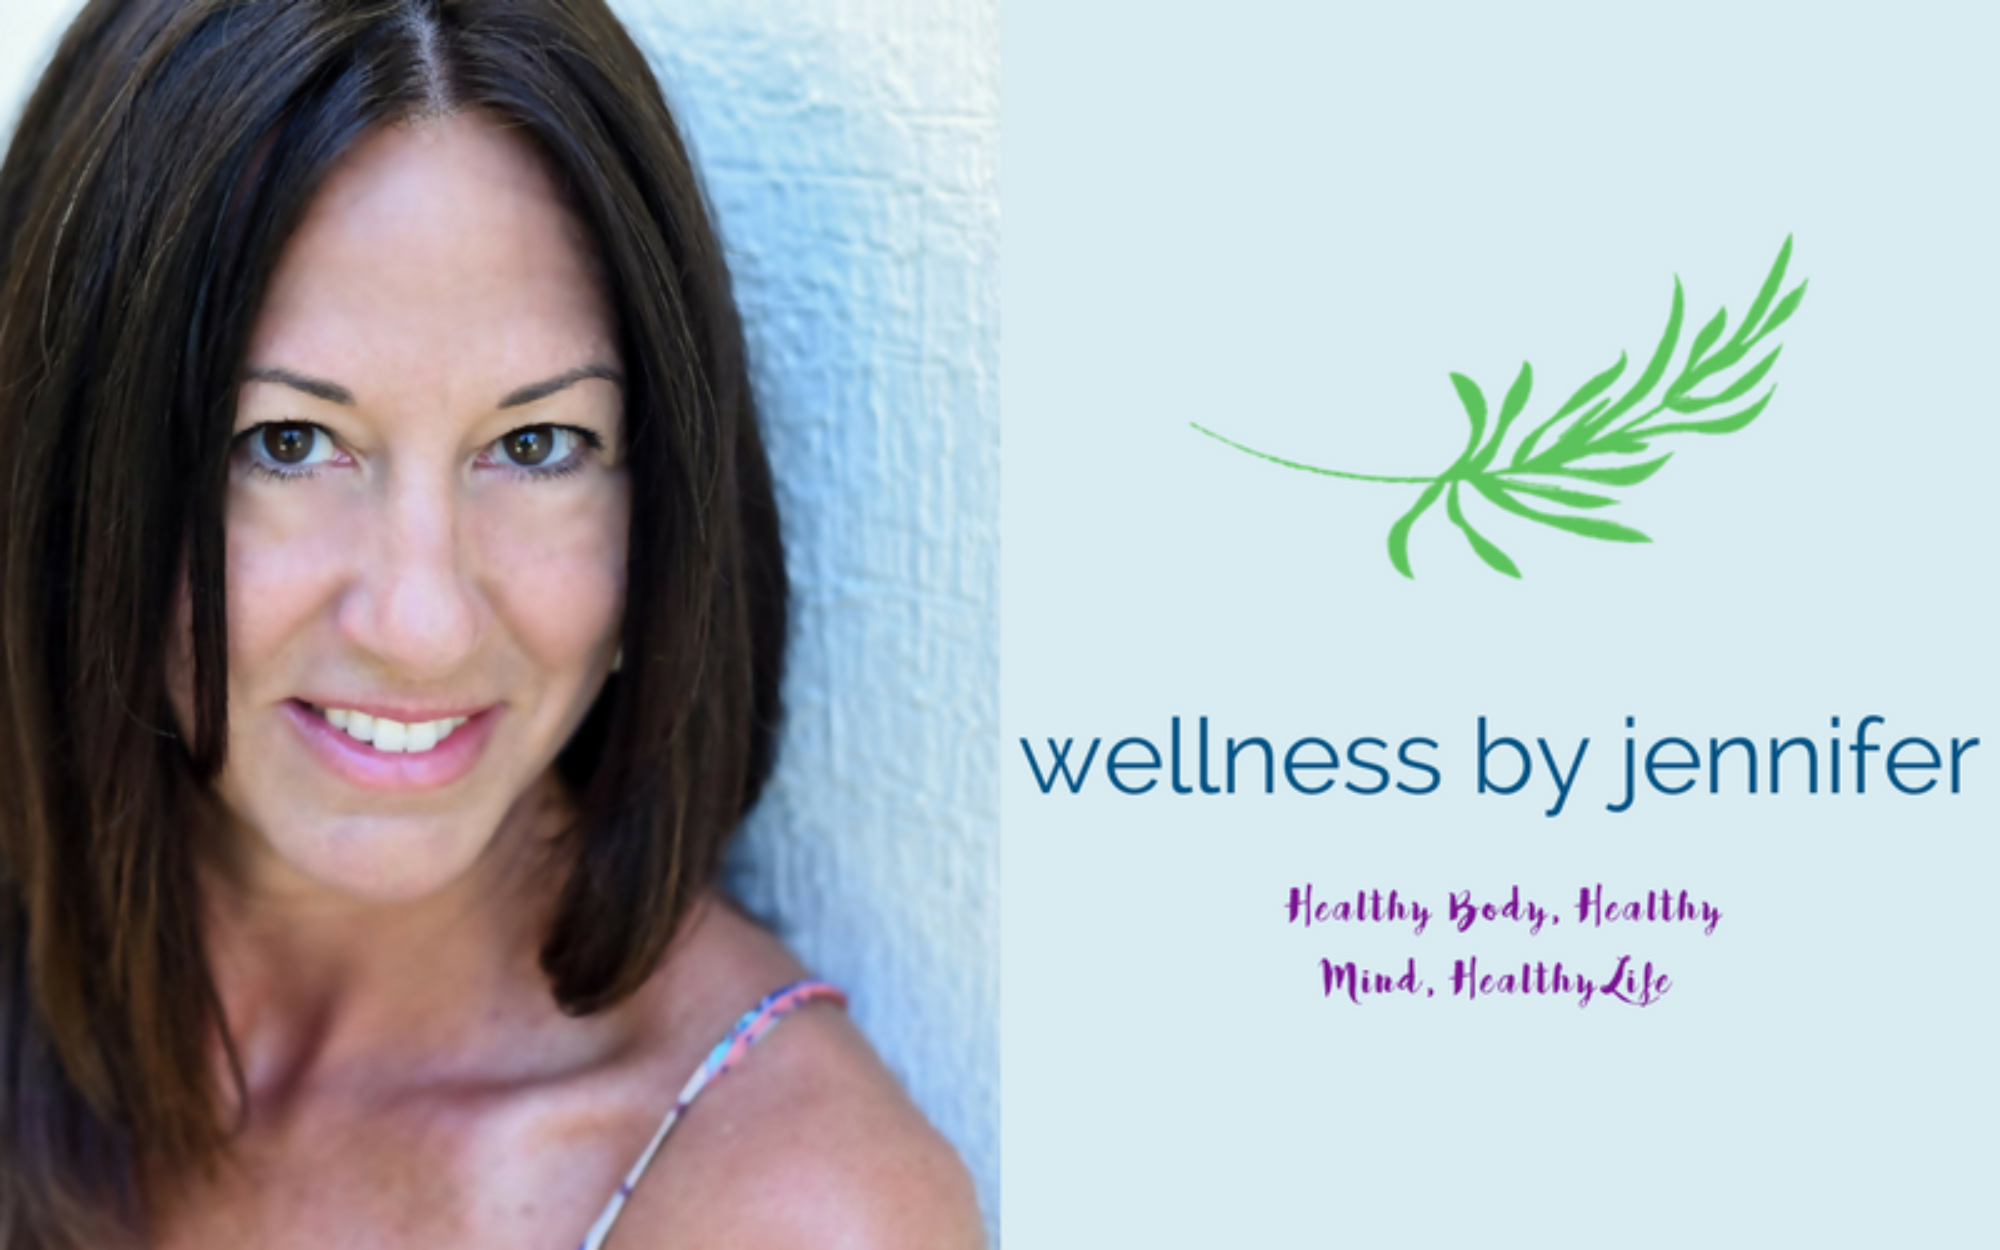 WellnessbyJennifer